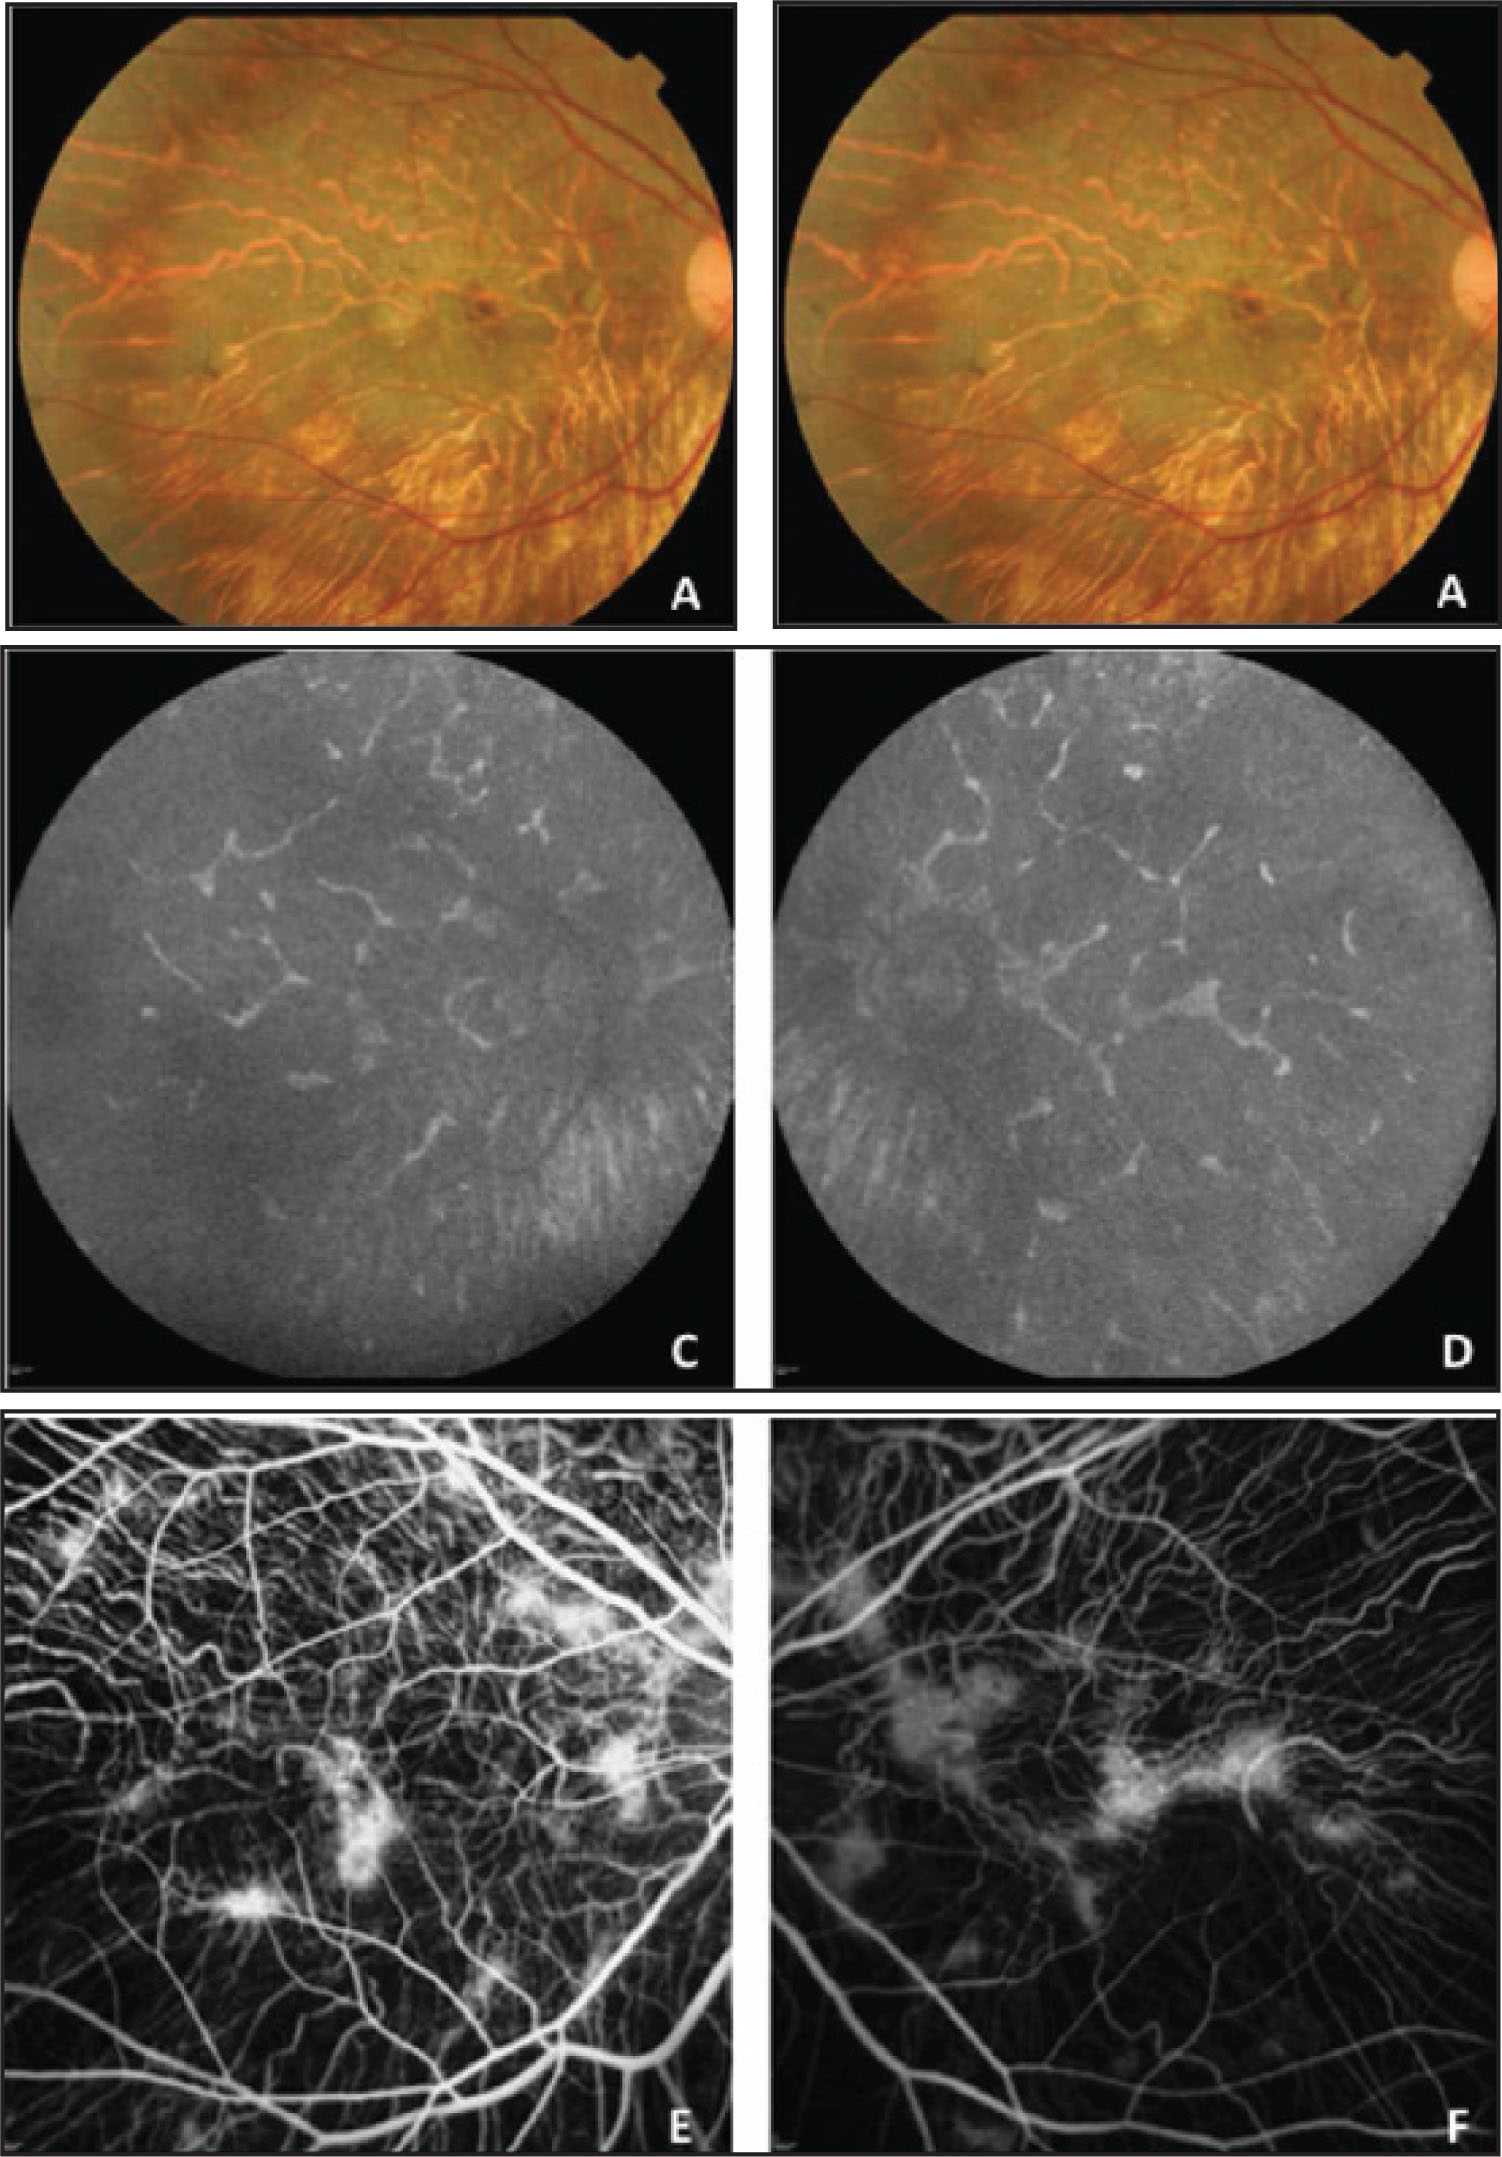 Color Fundus Photographs (A and B) Showing Bilateral Macular Pigment Mottling and Depigmentation, and Numerous Tiny Refractile Yellow Dots Scattered Throughout the Posterior Pole and the Mid-Periphery, Associated with Diffuse Choroidal and Retinal Pigment Epithelium (RPE) Atrophy and Pigment Accumulation. Fundus Autofluorescence Frames Revealing Widespread Hypo-Autofluorescence Corresponding to Diffuse RPE Atrophy, and Multiple Hyper-Autofluorescent Speckles in Correspondence of Residual RPE Areas (C and D). No Hyper-Autofluorescence Can Be Detected in Correspondence of the Retinal Crystals (C and D). Fluorescein Angiography (E and F) Showing Diffuse Advanced Choroidal Atrophy Characterized by a Marked Loss of the RPE and Choriocapillaris, and Multiple Hyper-Fluorescent Areas in Correspondence of Residual RPE.